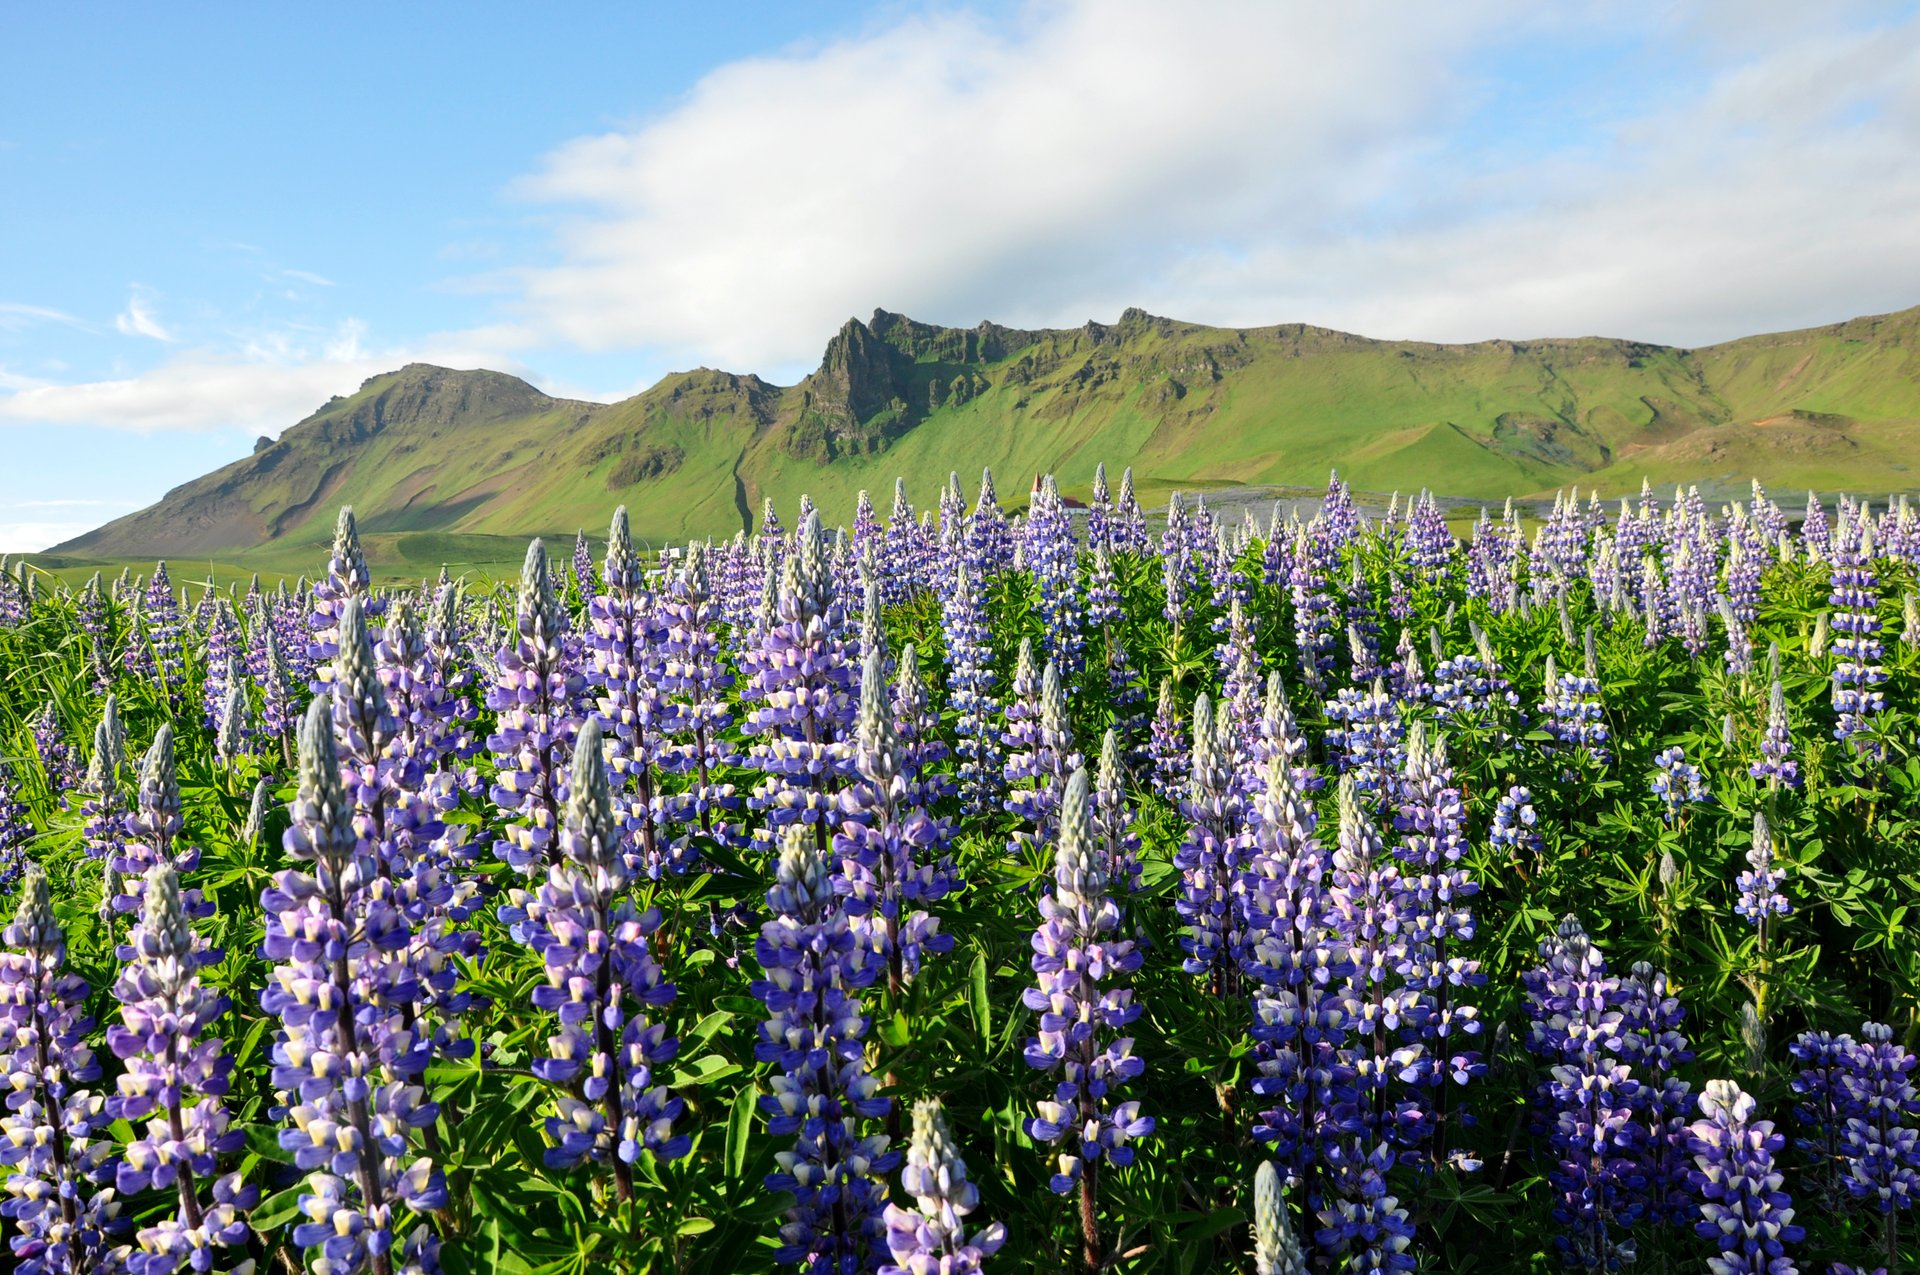 Lupin Blooming in Iceland 2020 - Best Time